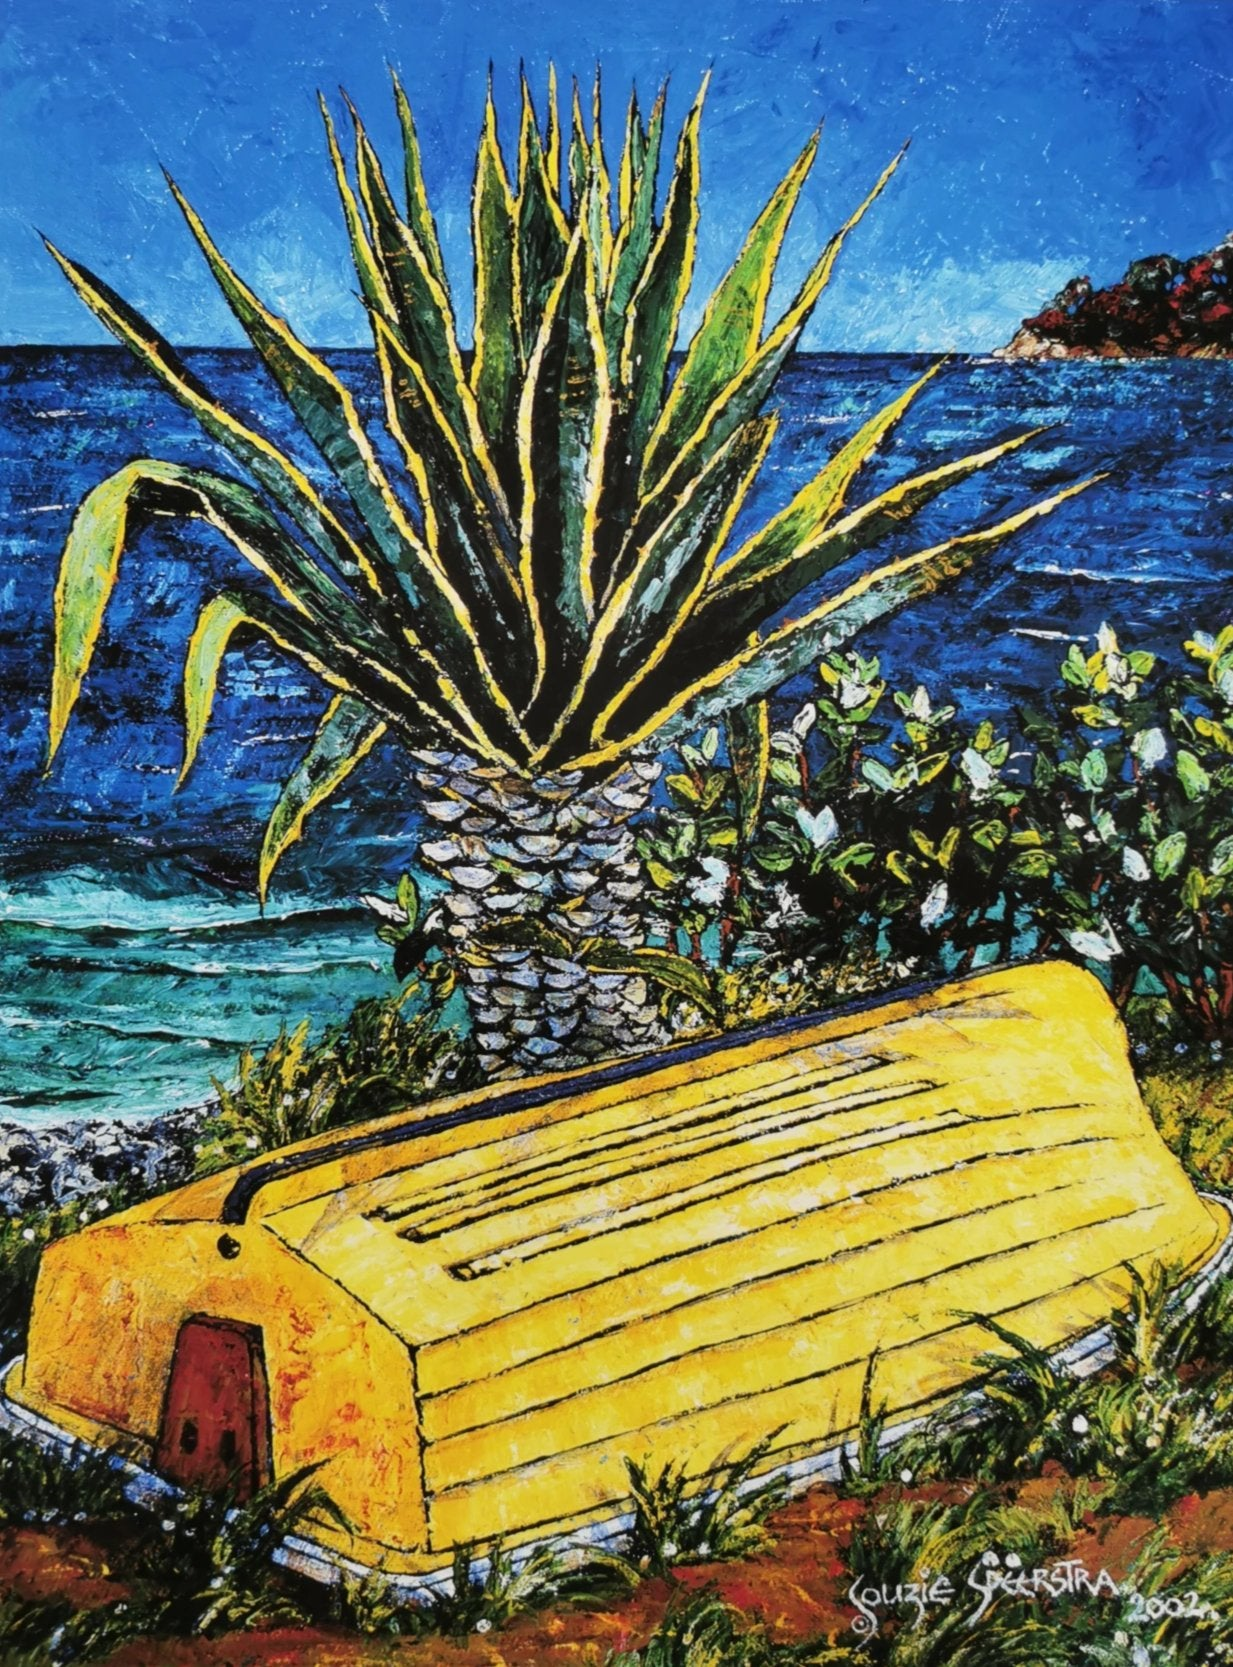 Yellow Dinghy, Russell